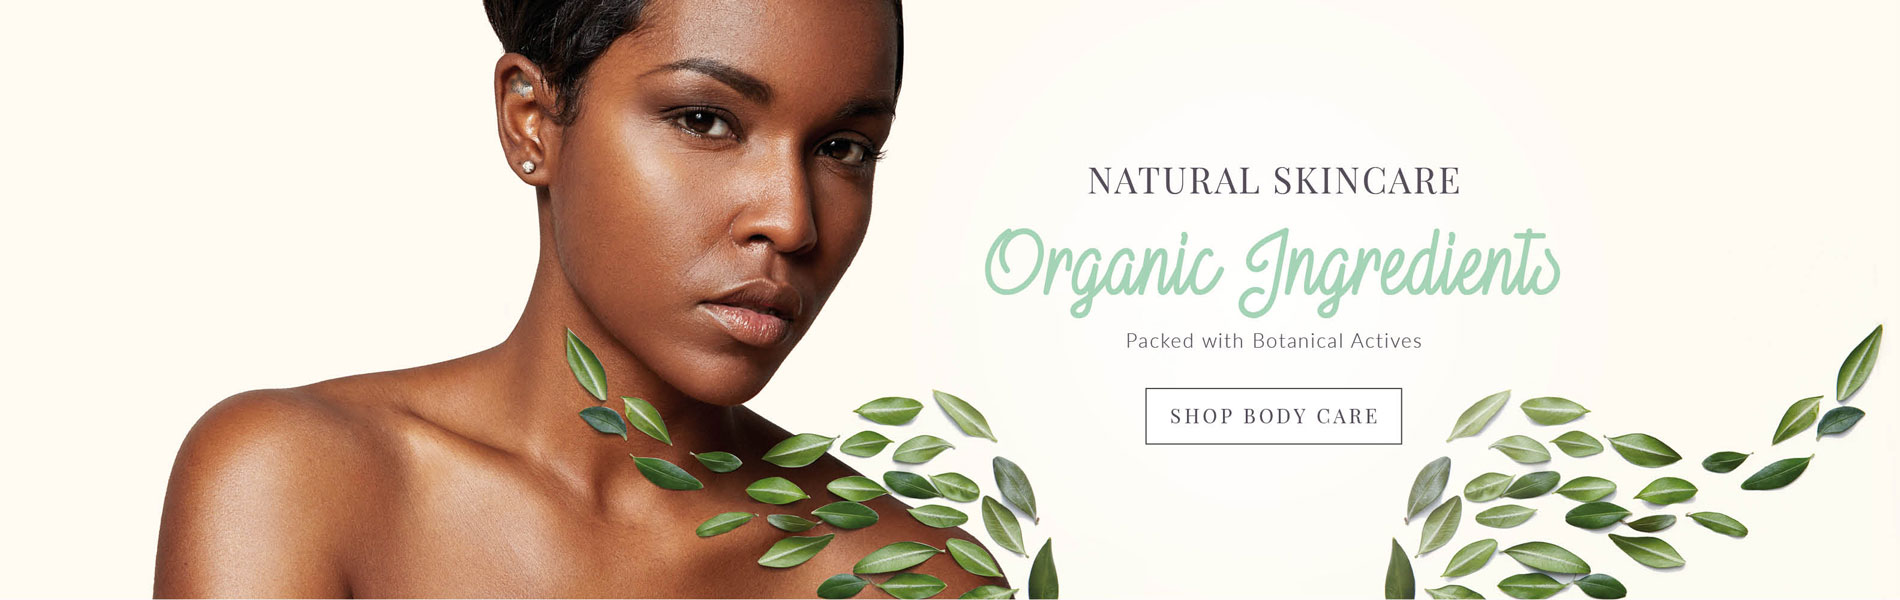 Natural Skincare Organic Ingredients packed with Botanical Actives